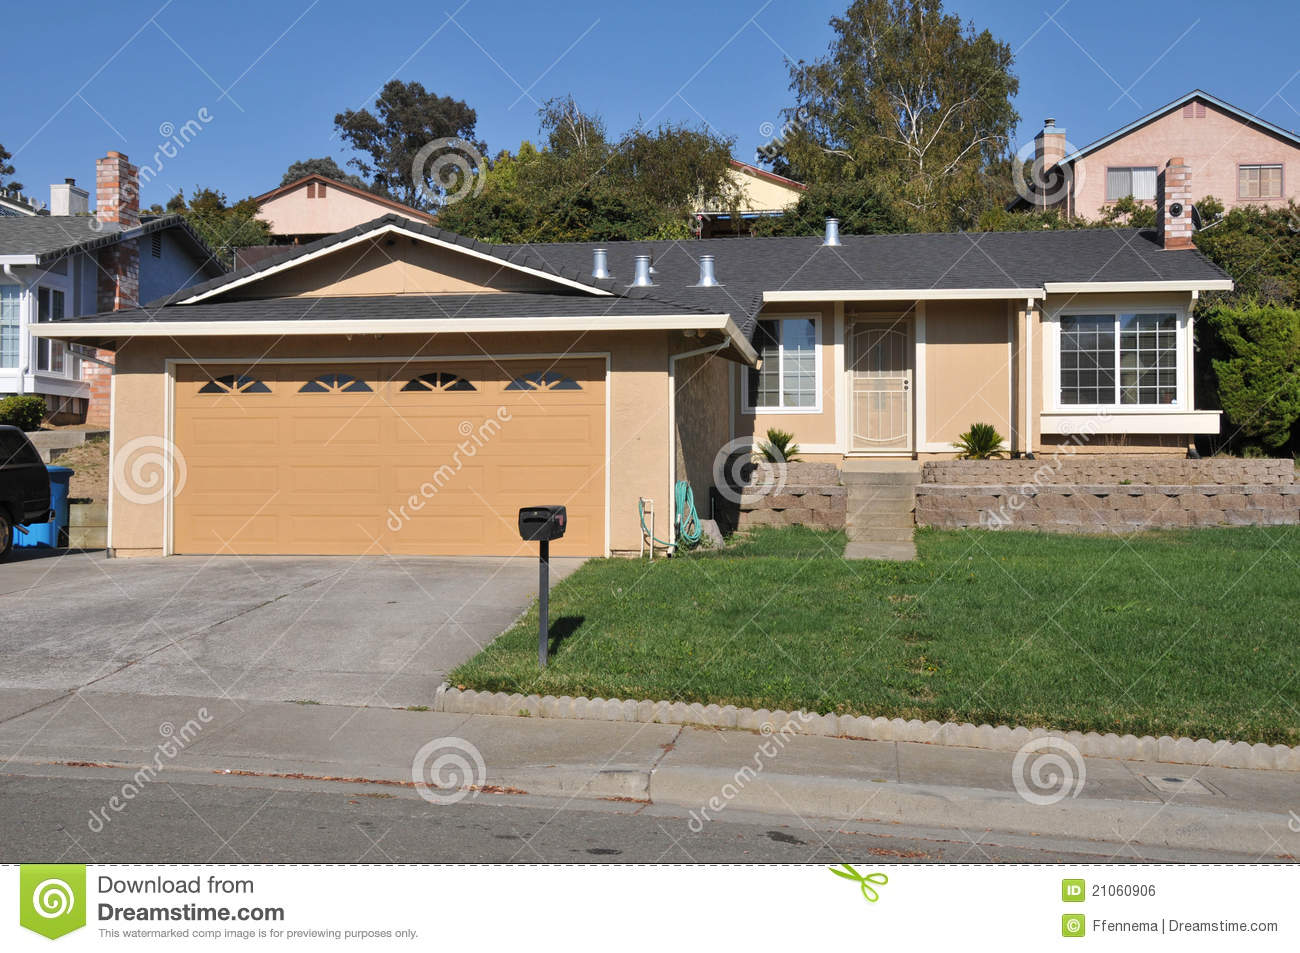 Single Family House One Story With Driveway Royalty Free Stock Image Image 21060906